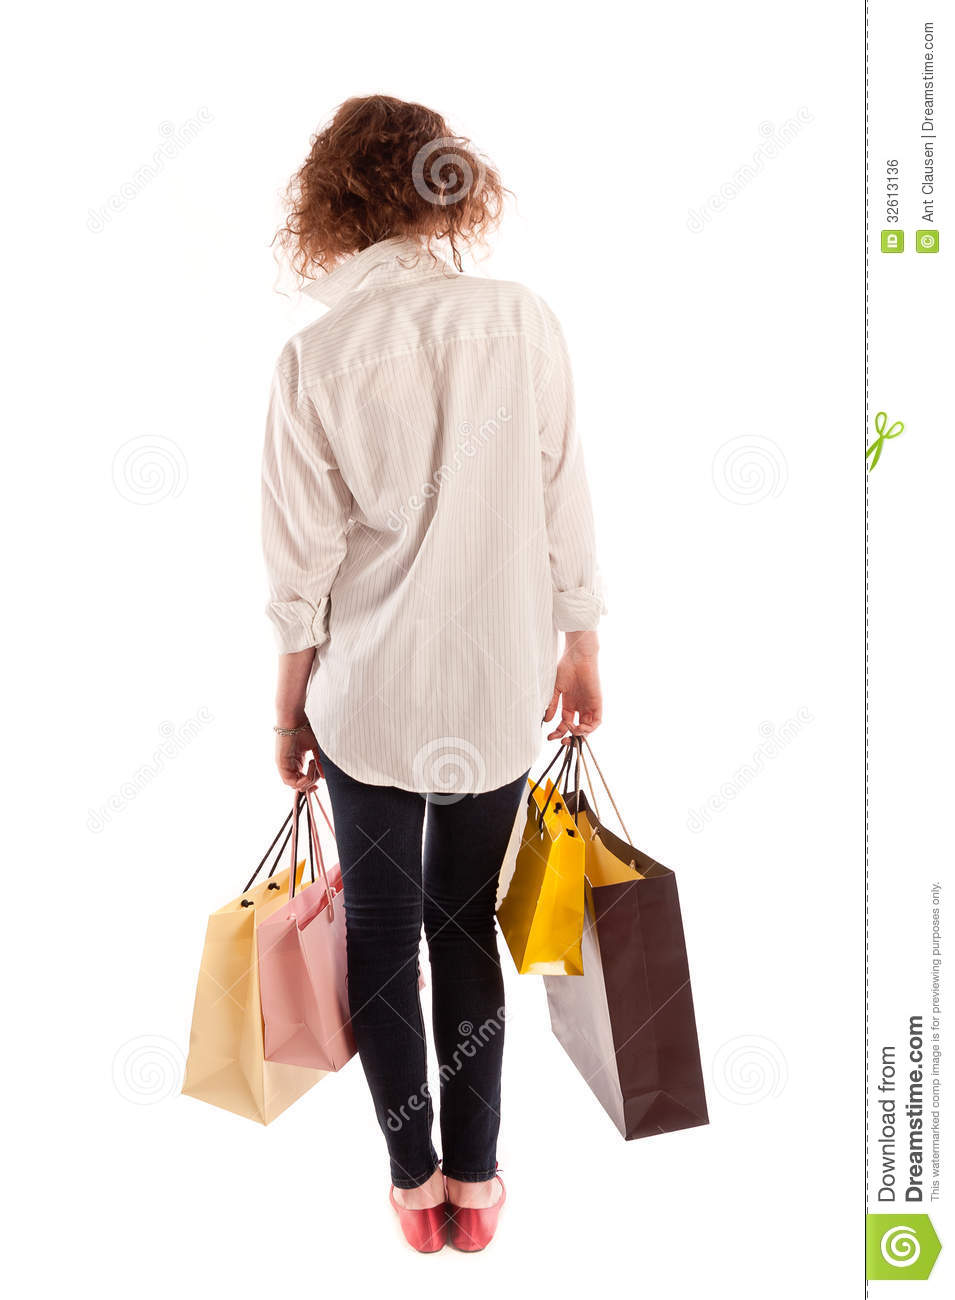 ... Walking Away With Shopping Royalty Free Stock Image - Image: 32613136